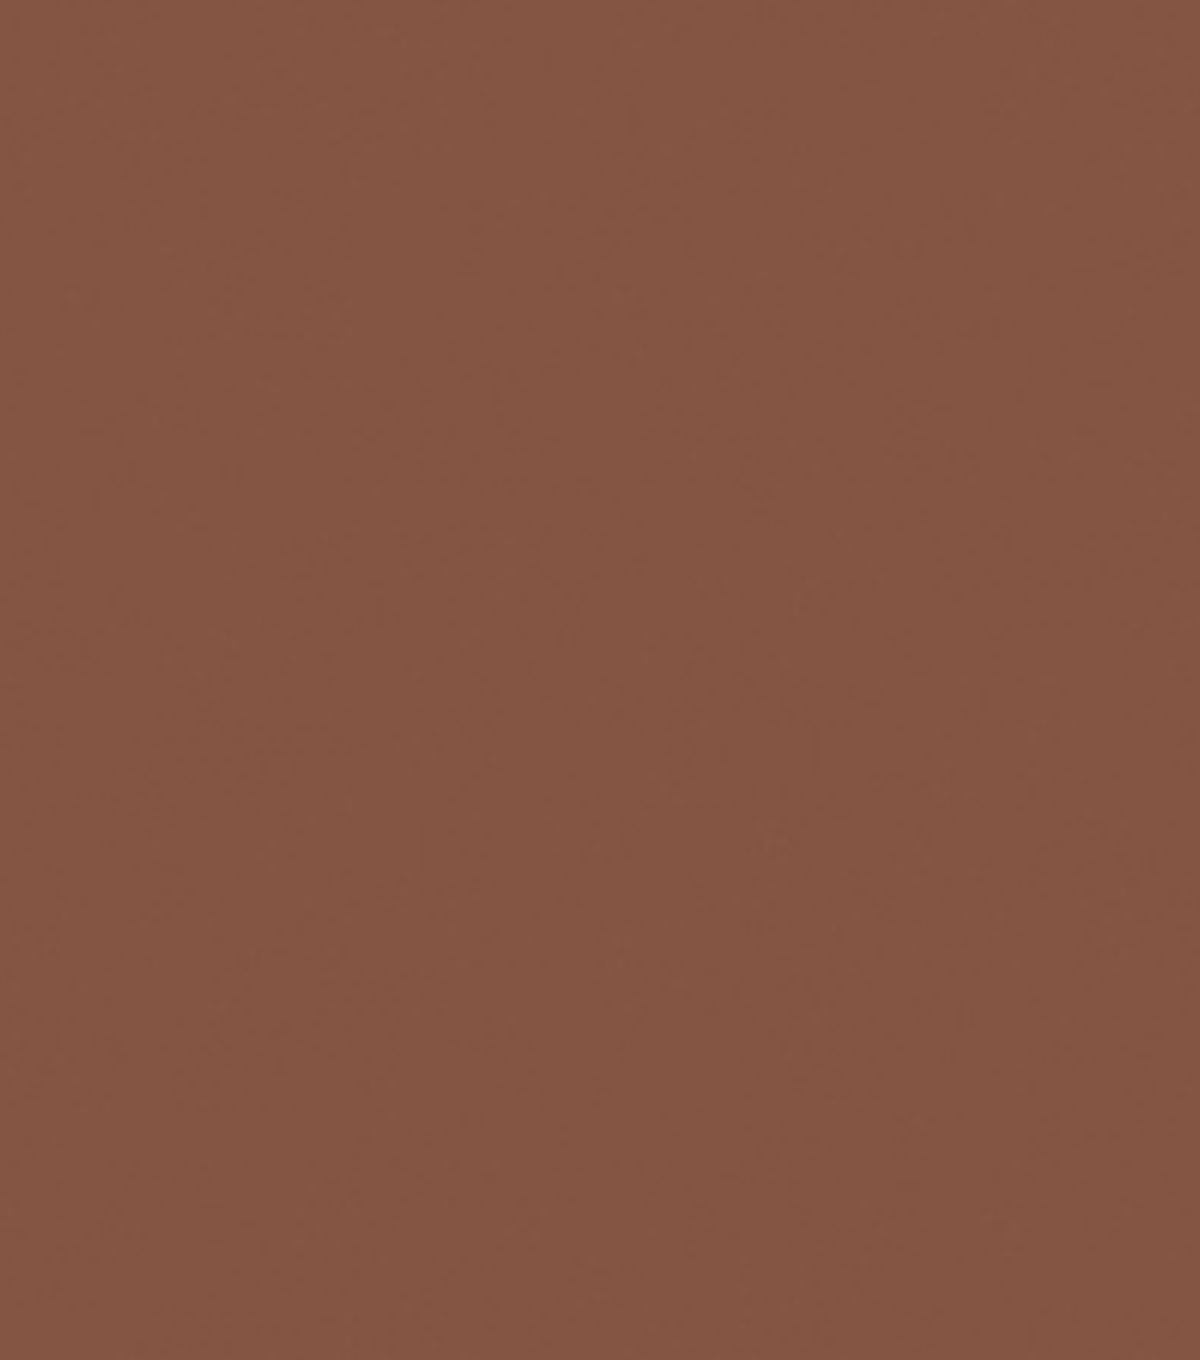 Delta Ceramcoat Acrylic Paint 2 oz, Dark Brown